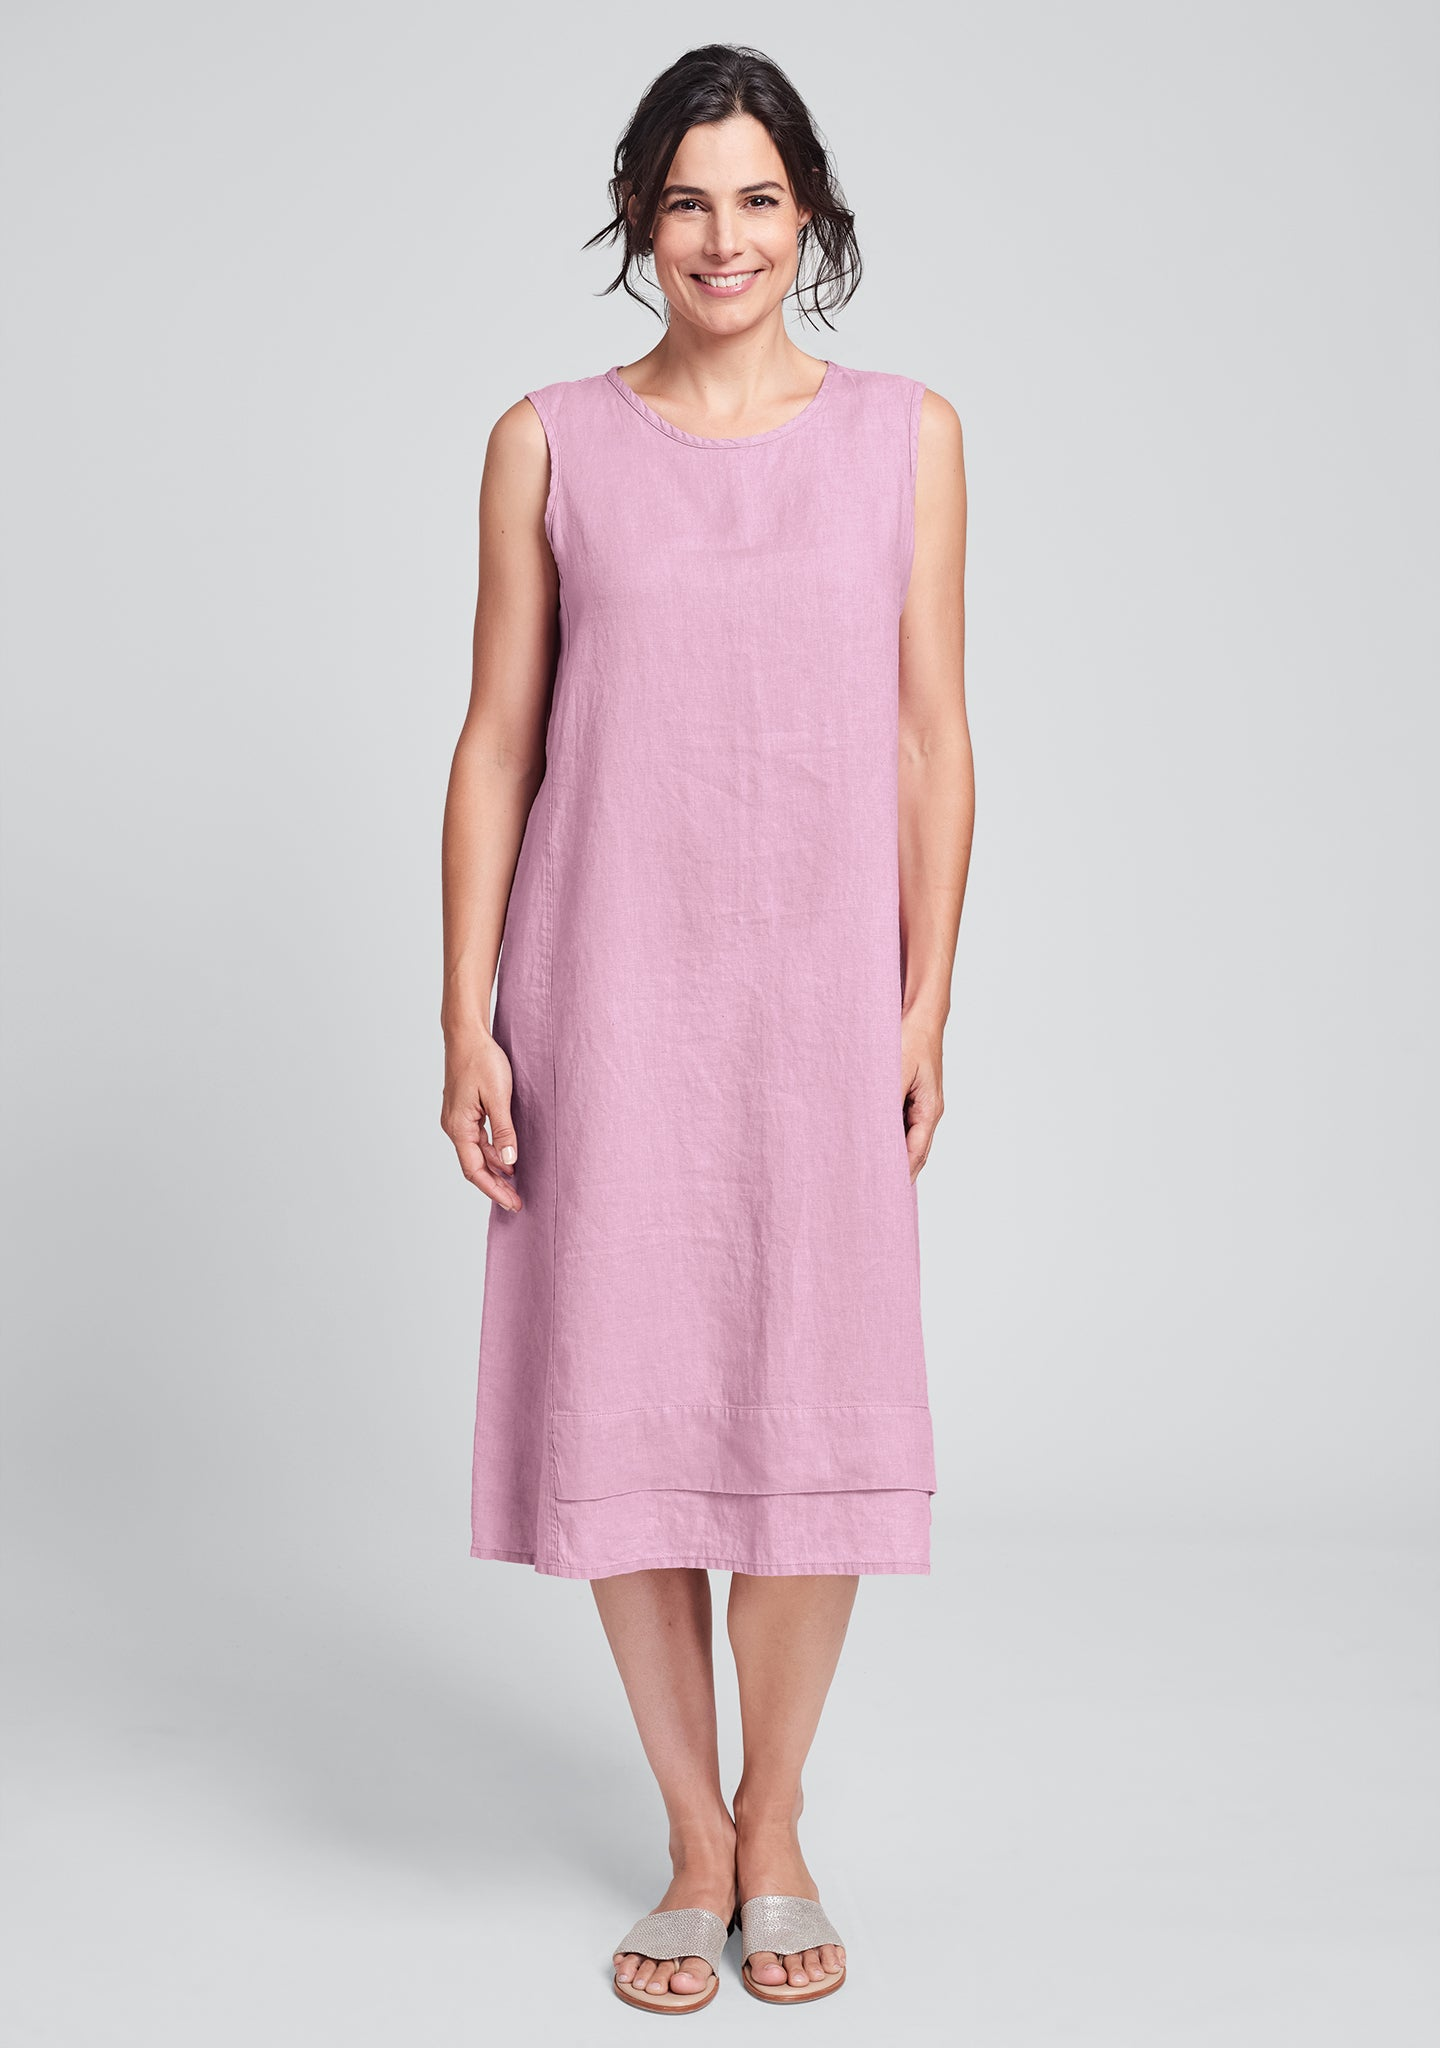 vancouver dress linen midi dress pink